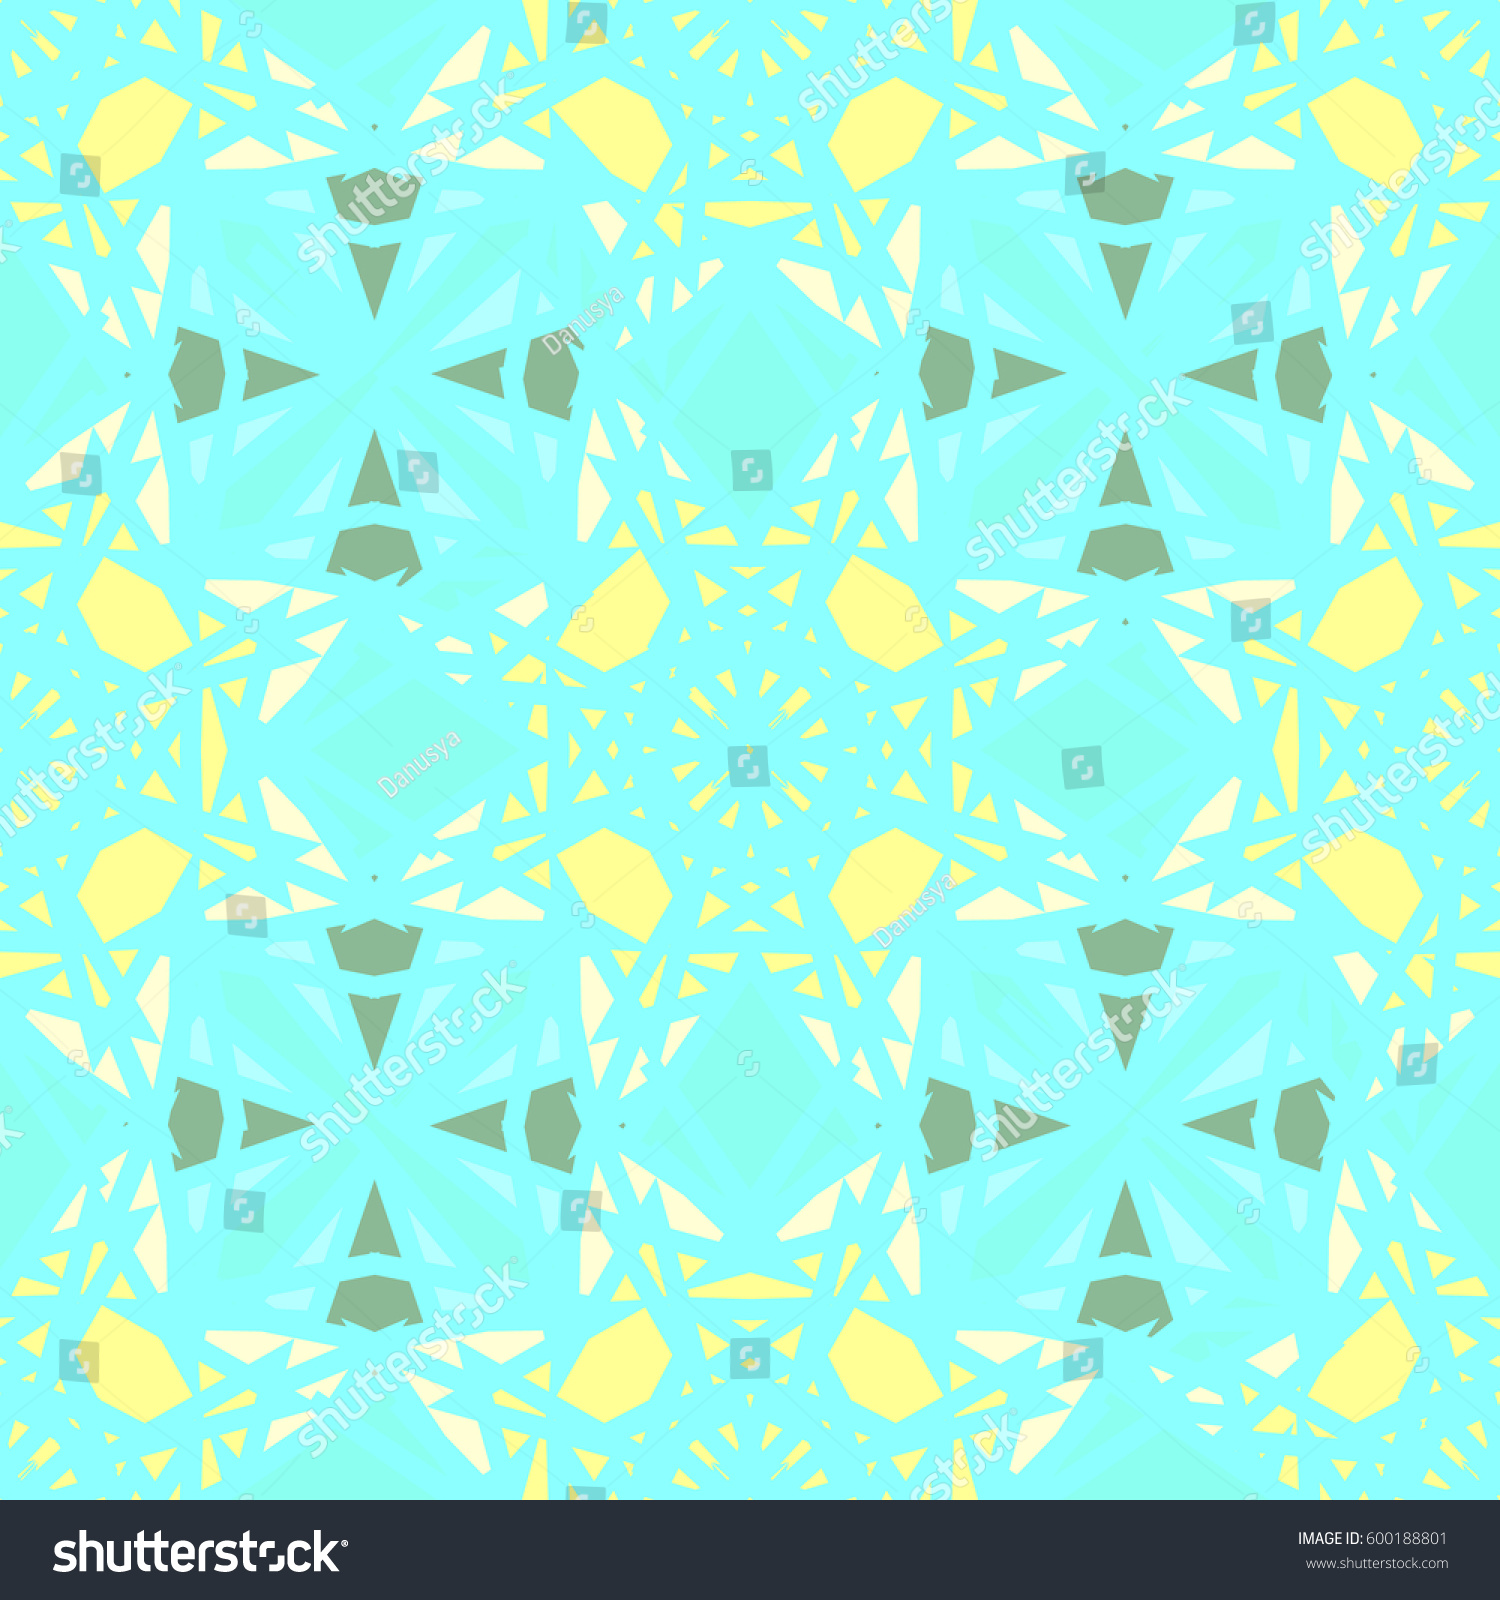 Abstract geometric colorful seamless pattern for background. Decorative backdrop can be used for wallpaper, pattern fills, web page background, surface textures. Old vintage retro energy pattern. #600188801